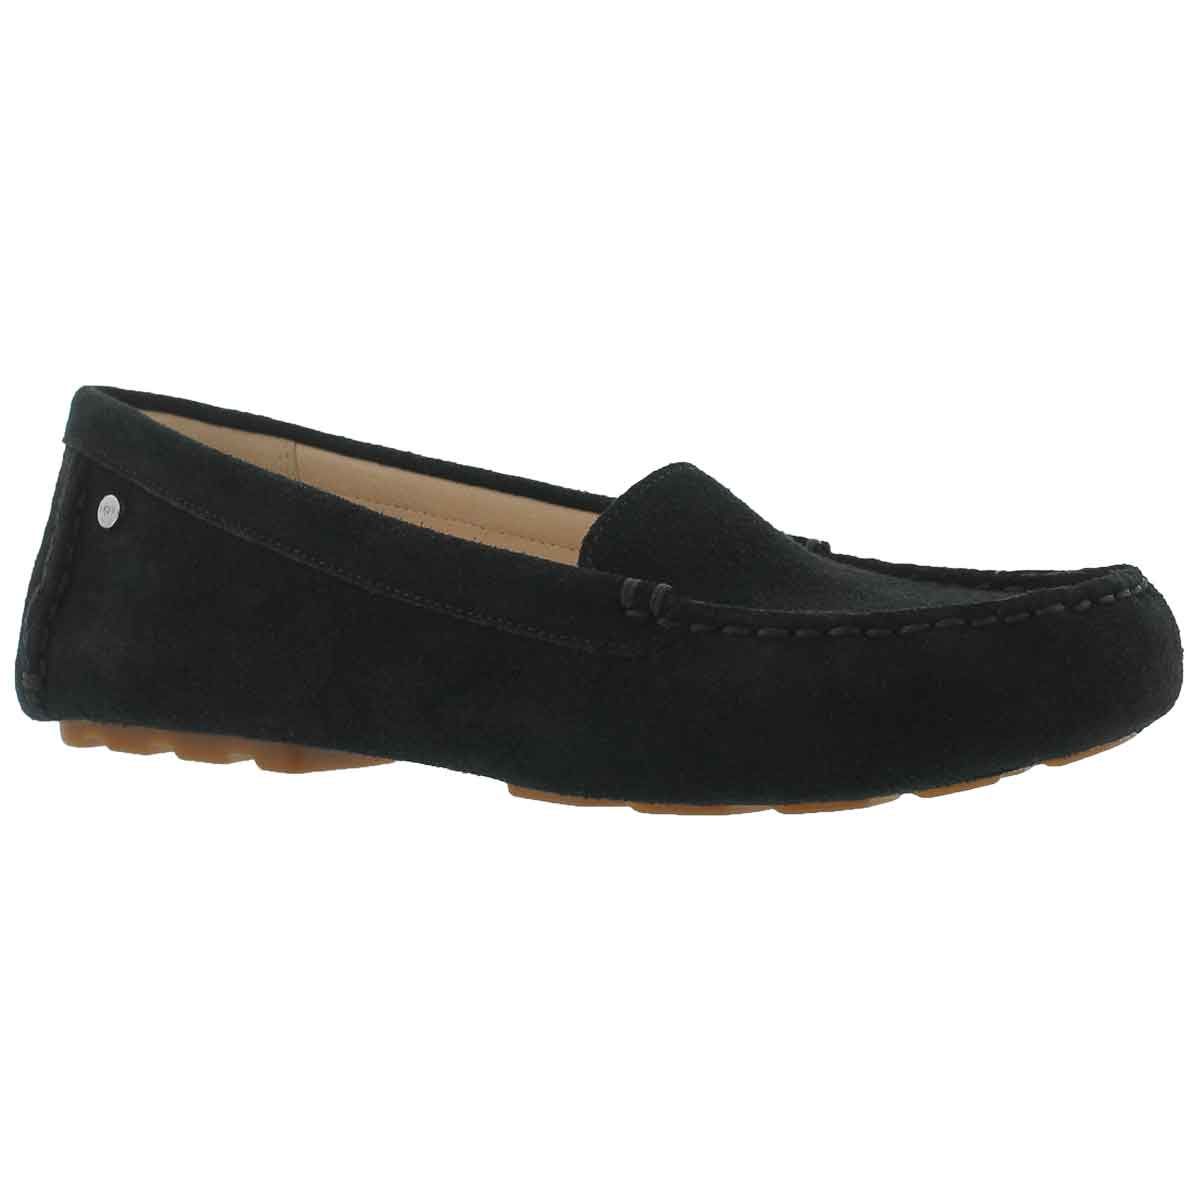 Women's MILANA black casual slip ons